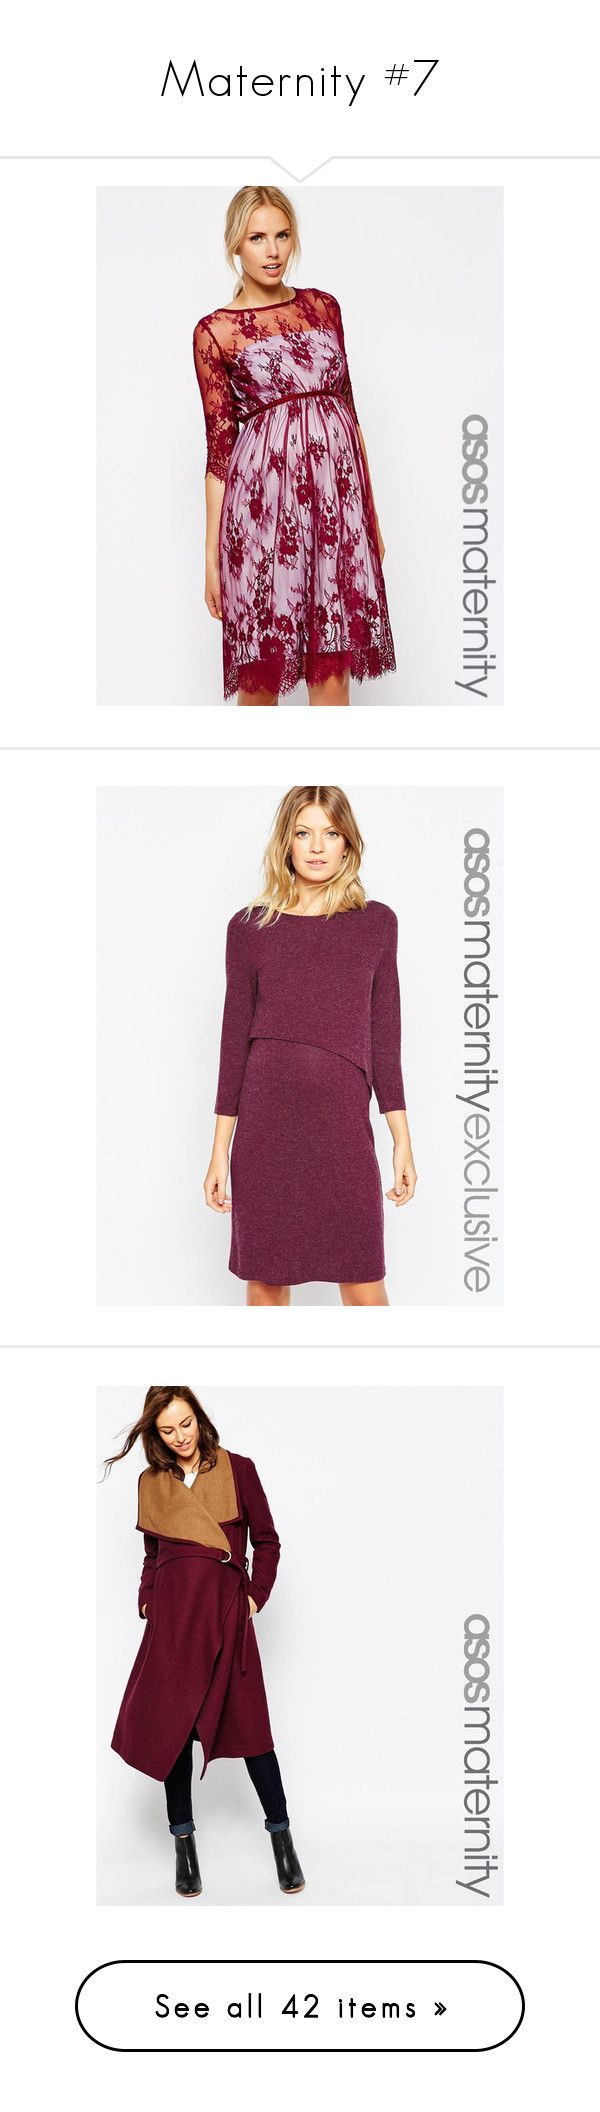 """""""Maternity #7"""" by crownprincesselizabeth ❤ liked on Polyvore featuring maternity, greypeach, red, berry, multi, ivory slip, dresses, midi dress, going out dresses and maxi party dresses"""